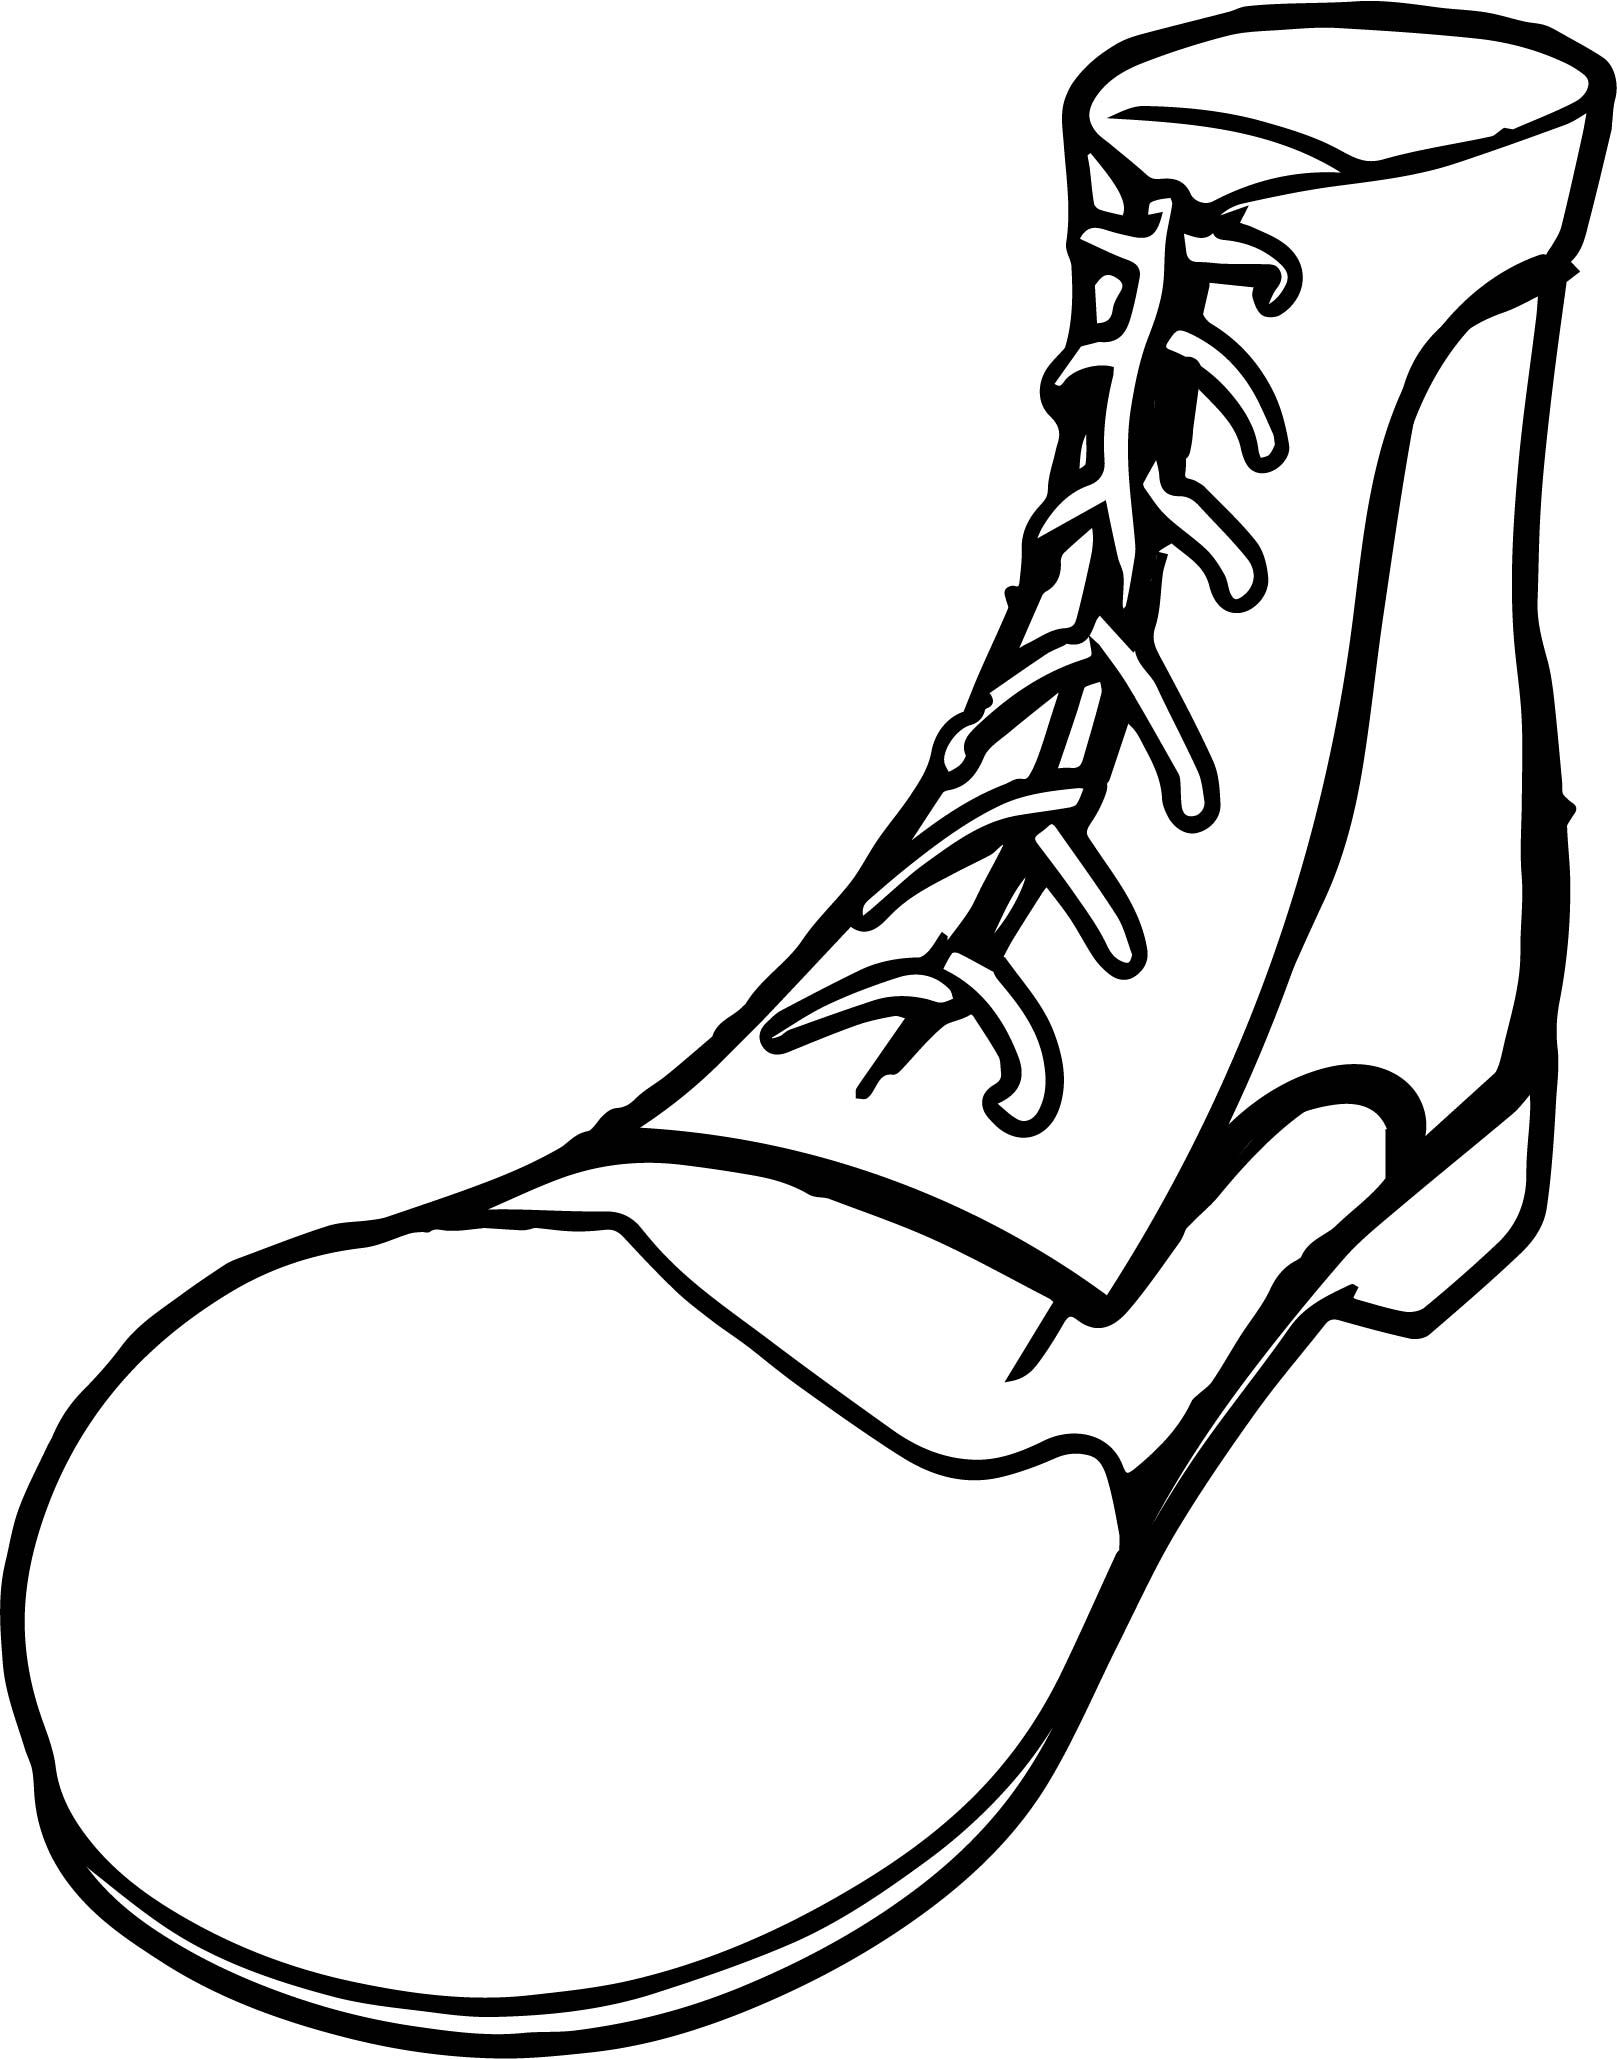 Clown Shoes Coloring Page Clown Shoes Coloring Pages Coloring